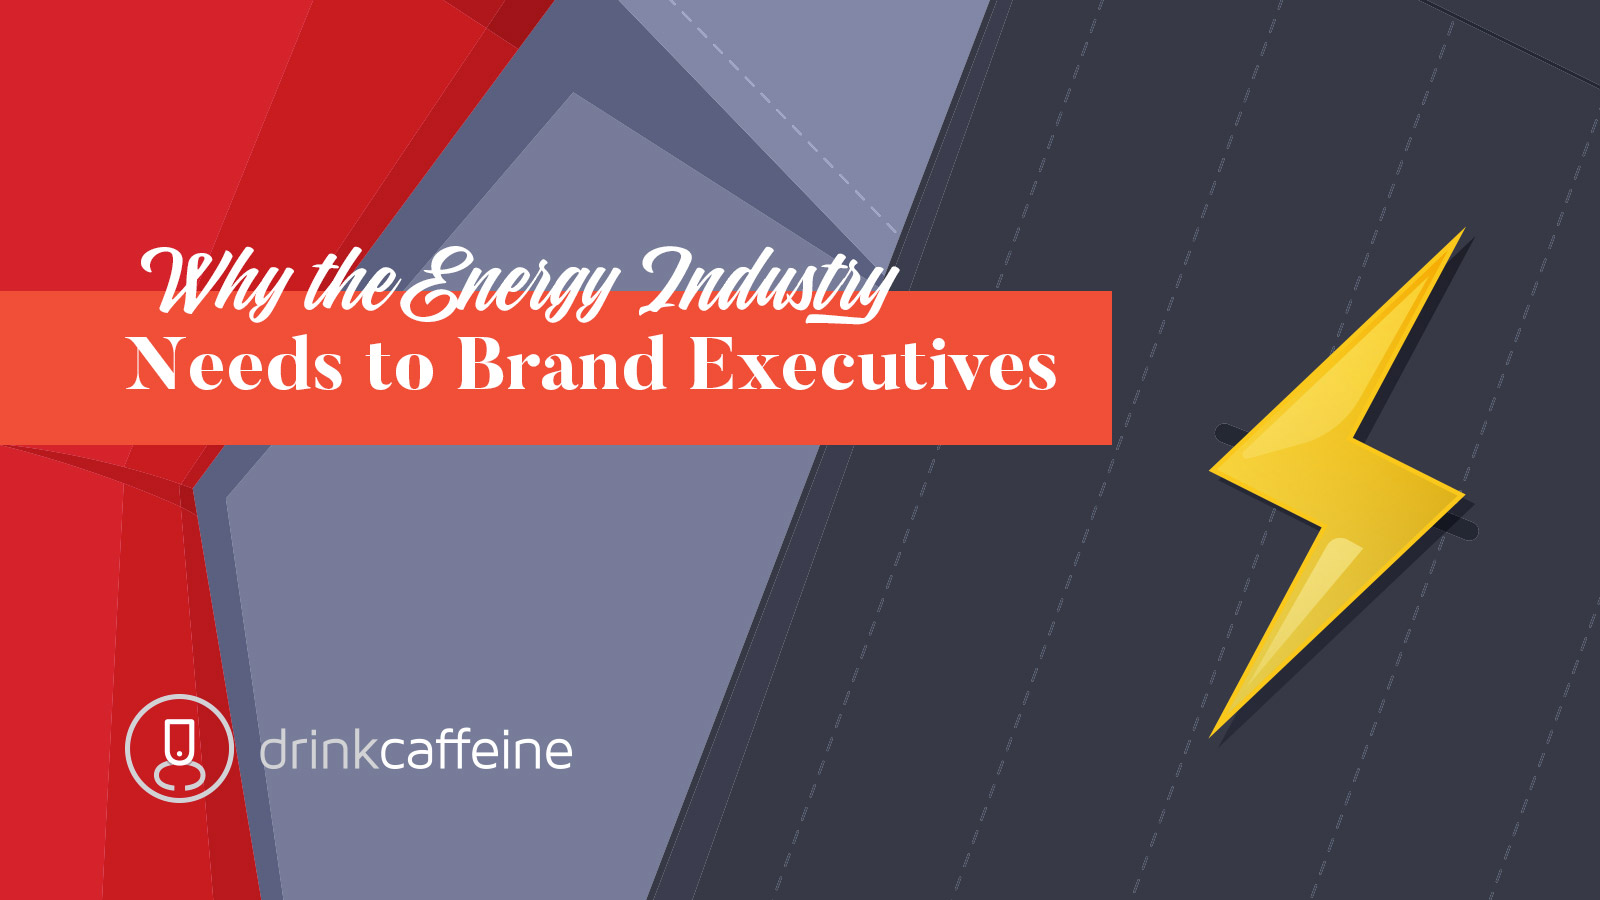 How energy companies can make executive branding a powerful tool blog image